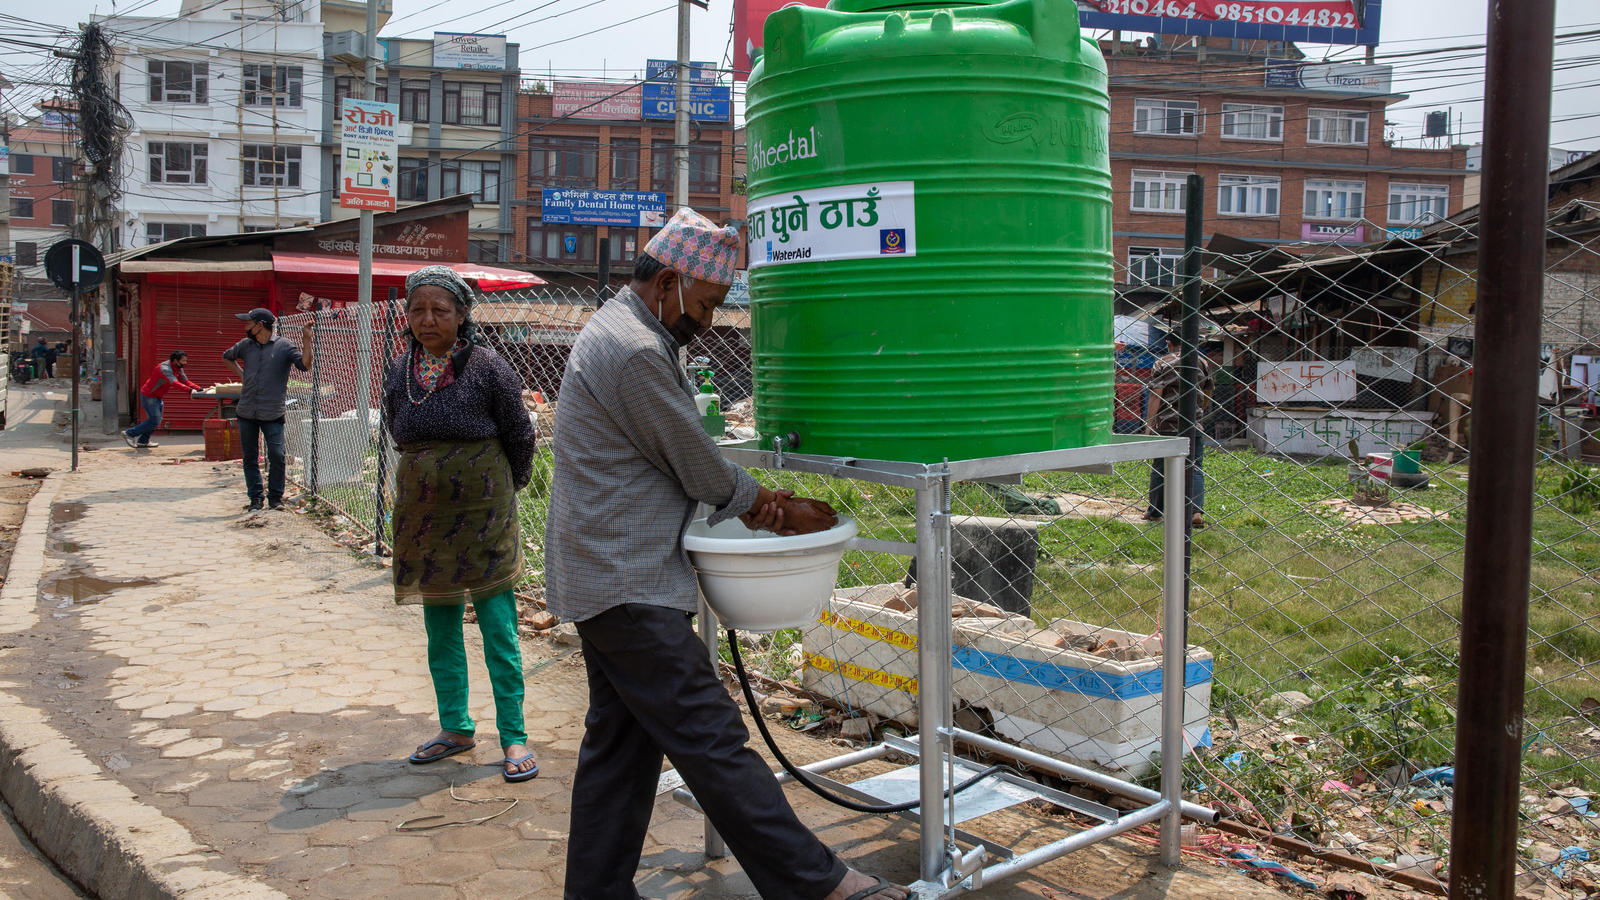 A local resident washing his hands using the contactless handwashing station at Lagankhel bus station, Lalitpur, Nepal, April 2020.